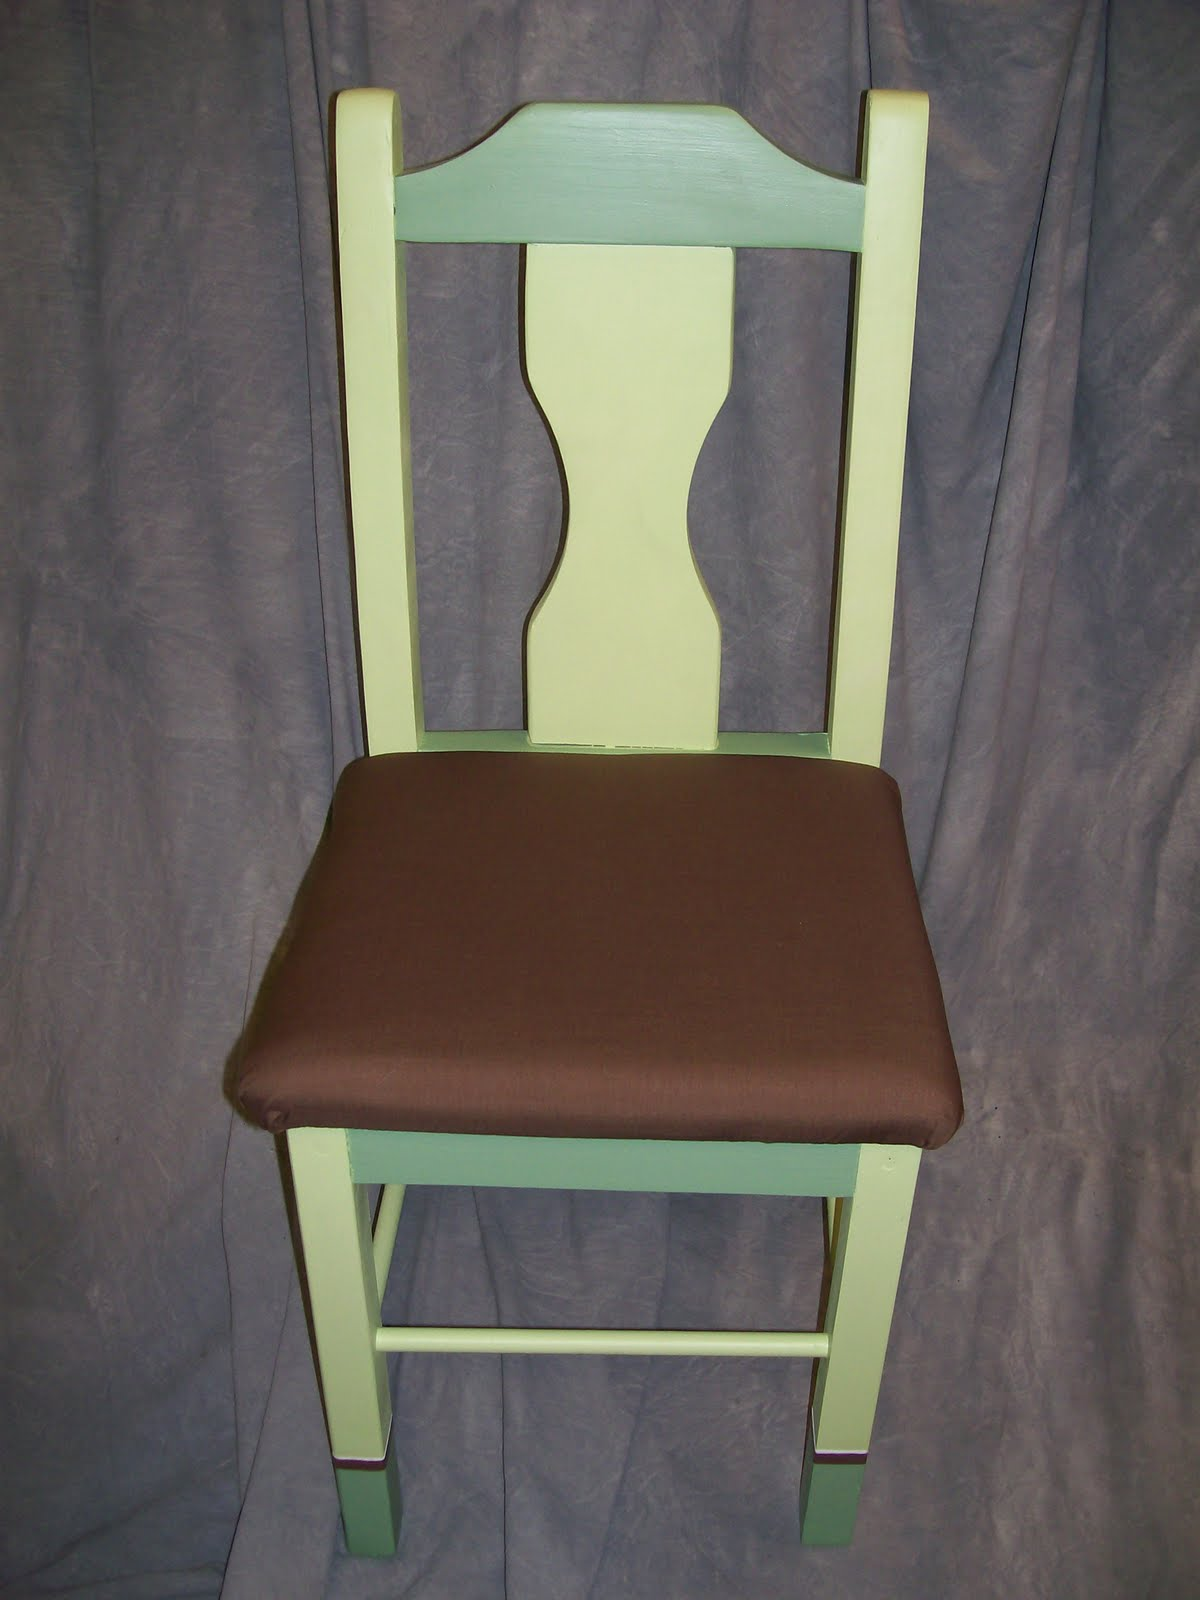 Margaritaville Chairs For Sale Retro Dining Gumtree Perth Charity And Pass Along Plants April 2010